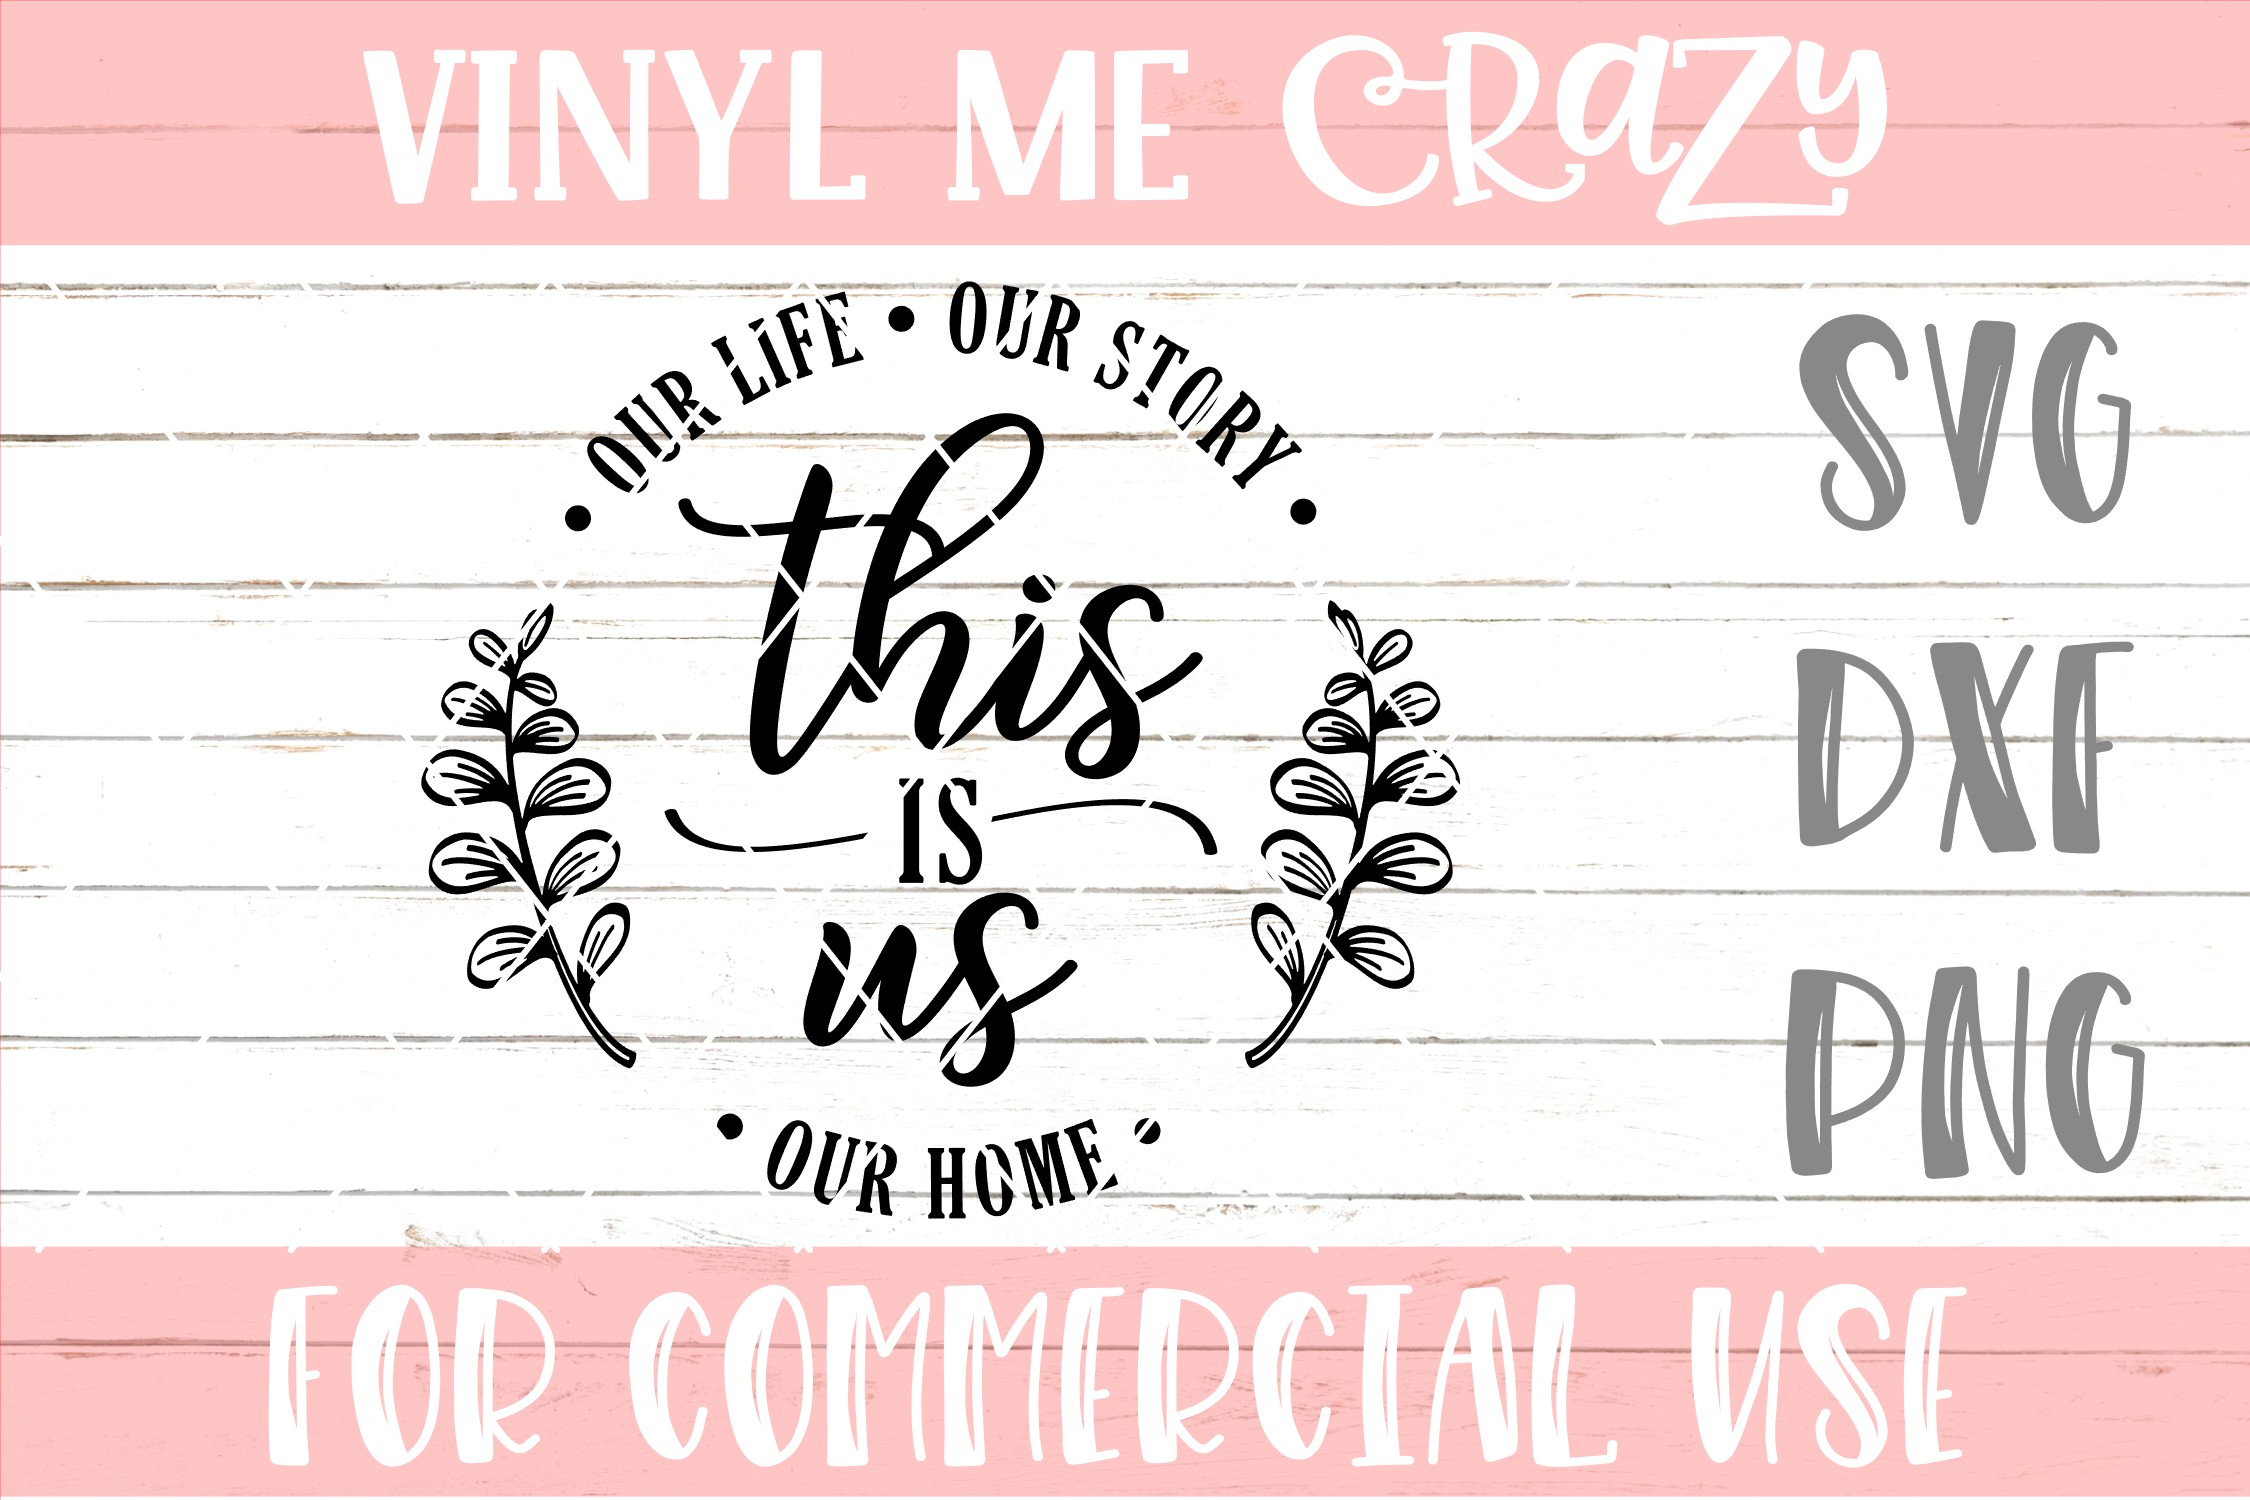 This Is Us Our Story Our Life Our Home SVG DXF PNG example image 1